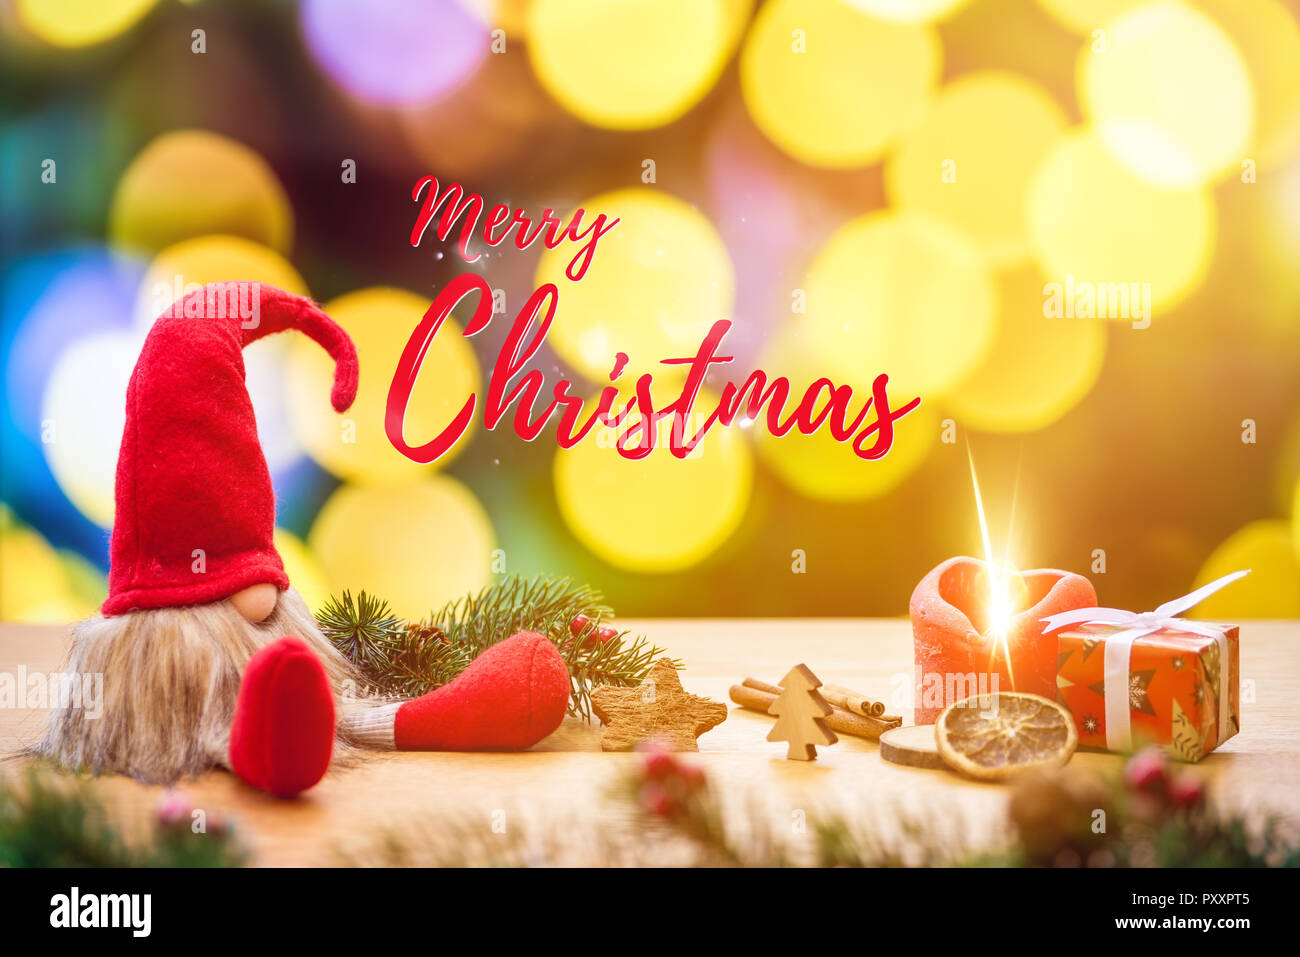 Red sitting christmas elf with merry christmas writing and bokeh lights in background surrounded by christmas decorations as gift box and ignited adve - Stock Image